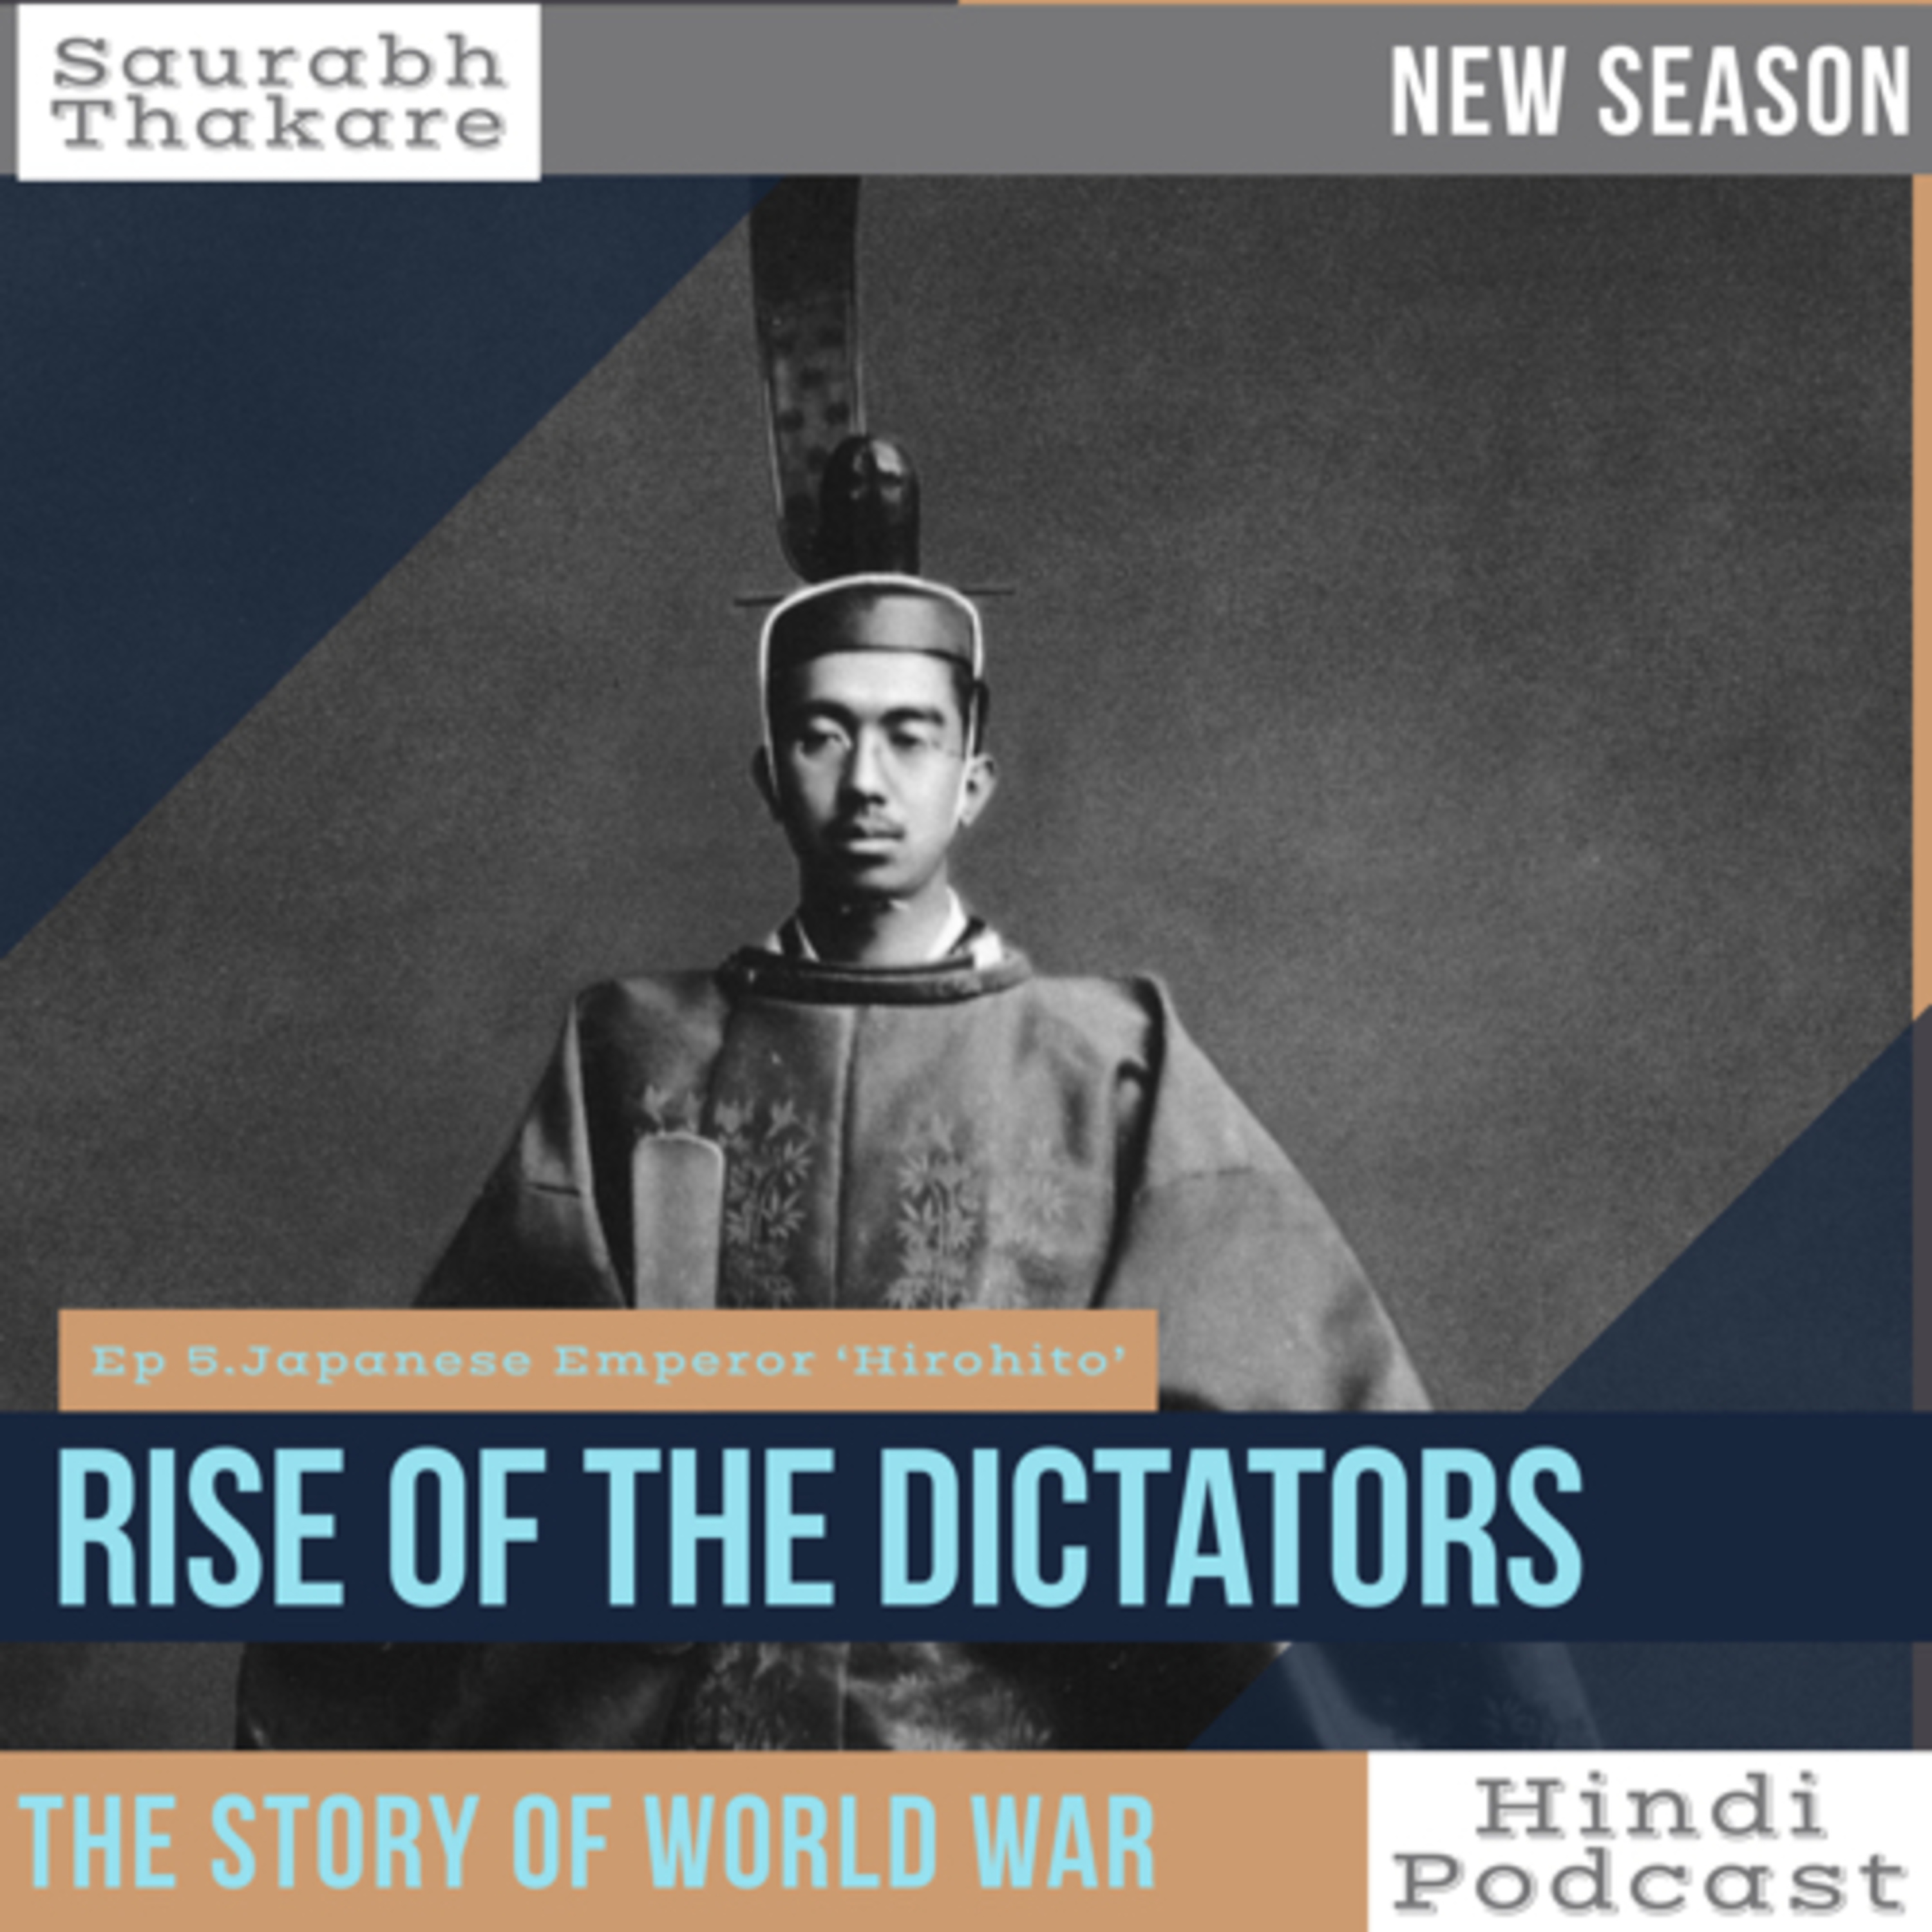 #42 RISE OF THE DICTATORS |Ep 21. Japanese Emperor 'Hirohito'